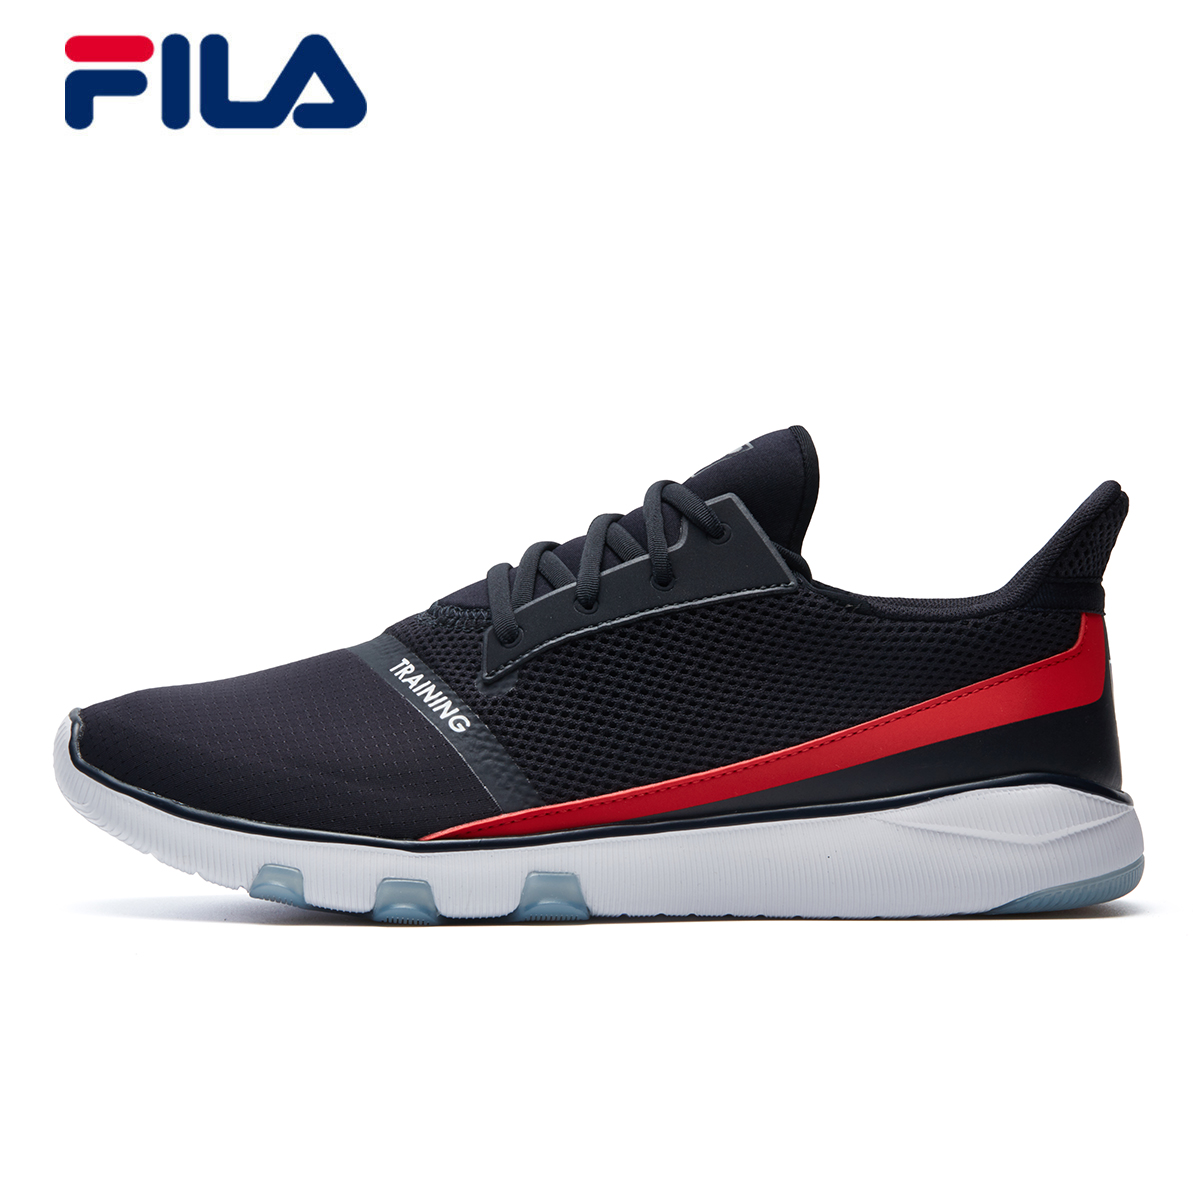 USD 205.89] FILA Fila men's shoes 2018 autumn new breathable